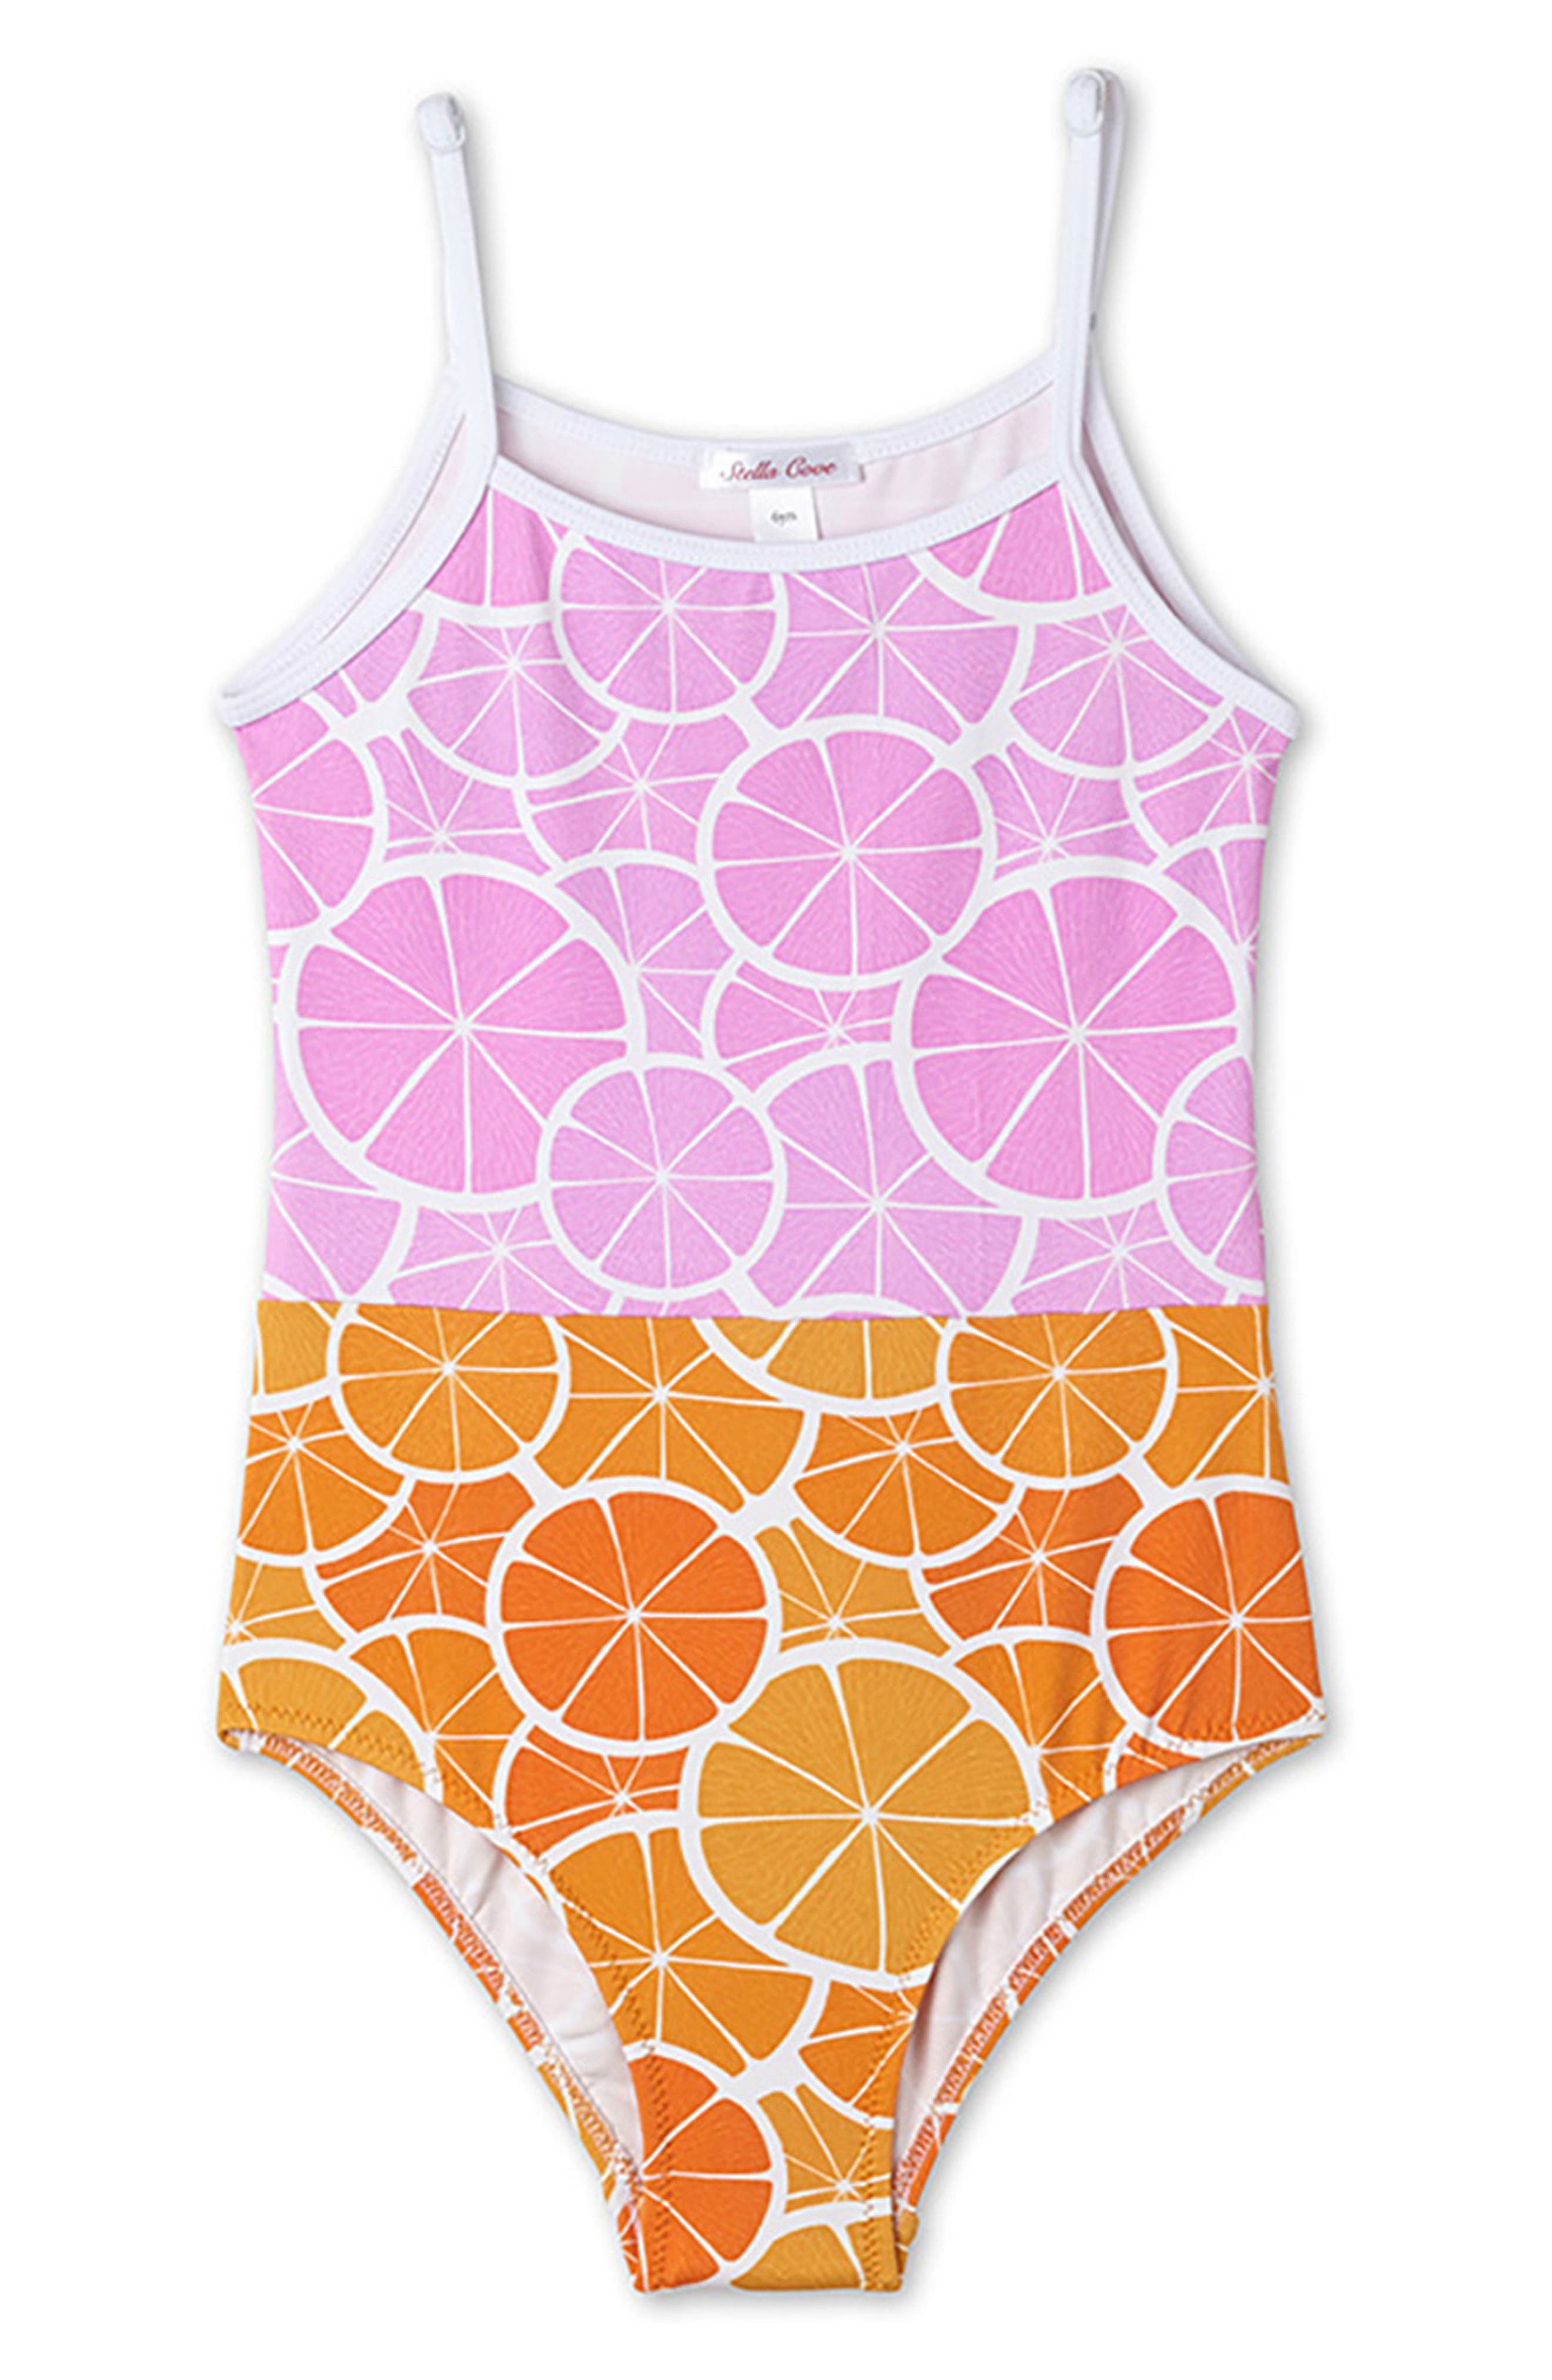 Alternate Image 1 Selected - Stella Cove Orange Slice One-Piece Swimsuit (Toddler Girls, Little Girls & Big Girls)